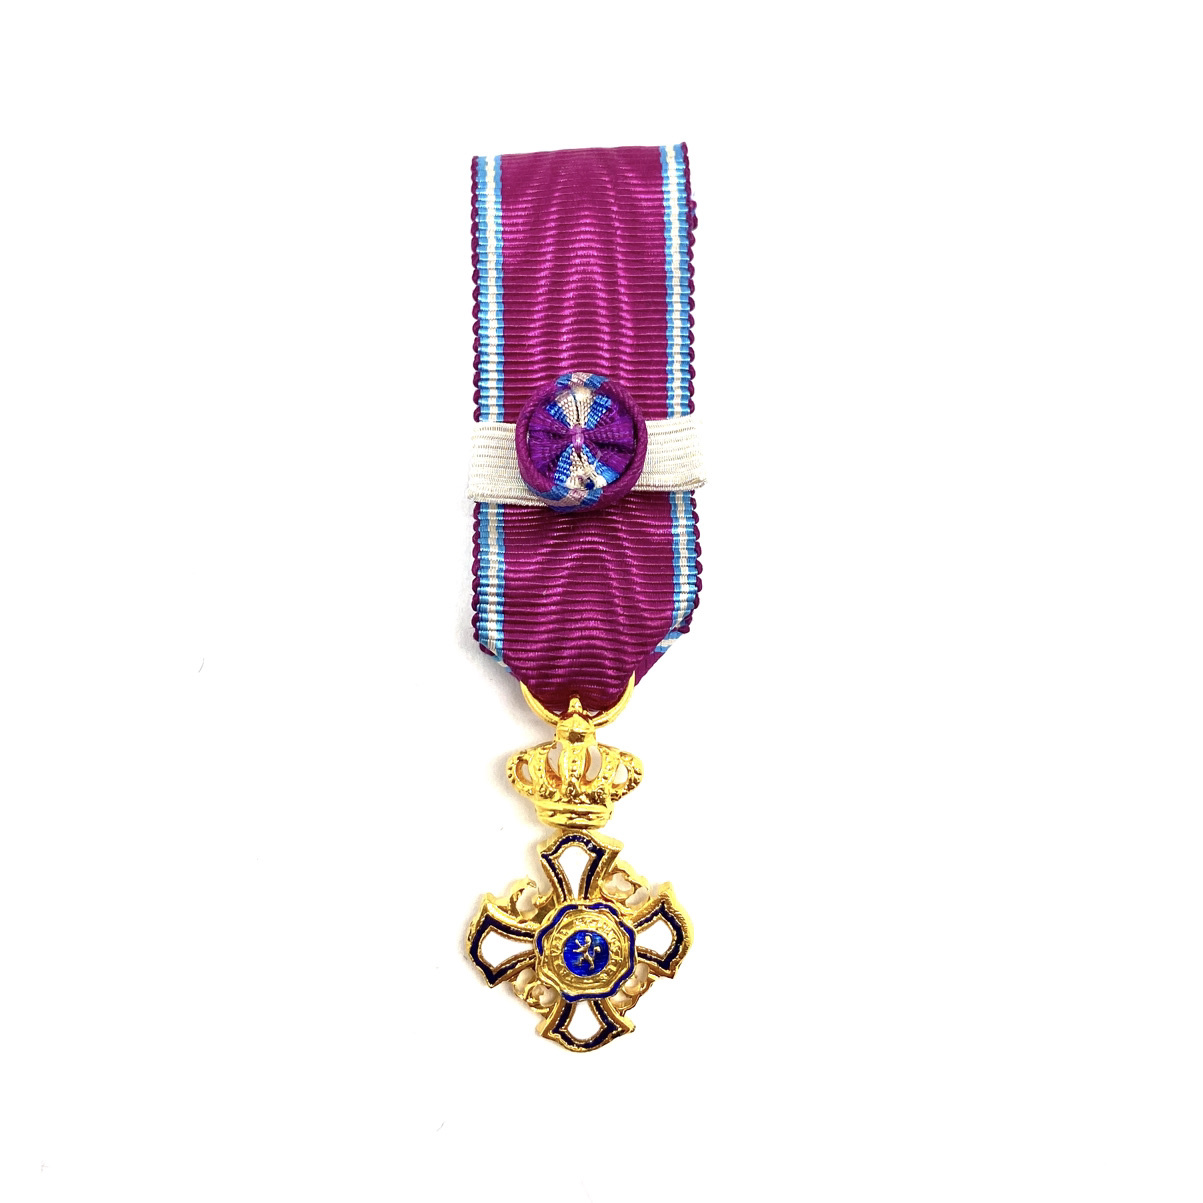 Commander in the Royal Order of the Lion